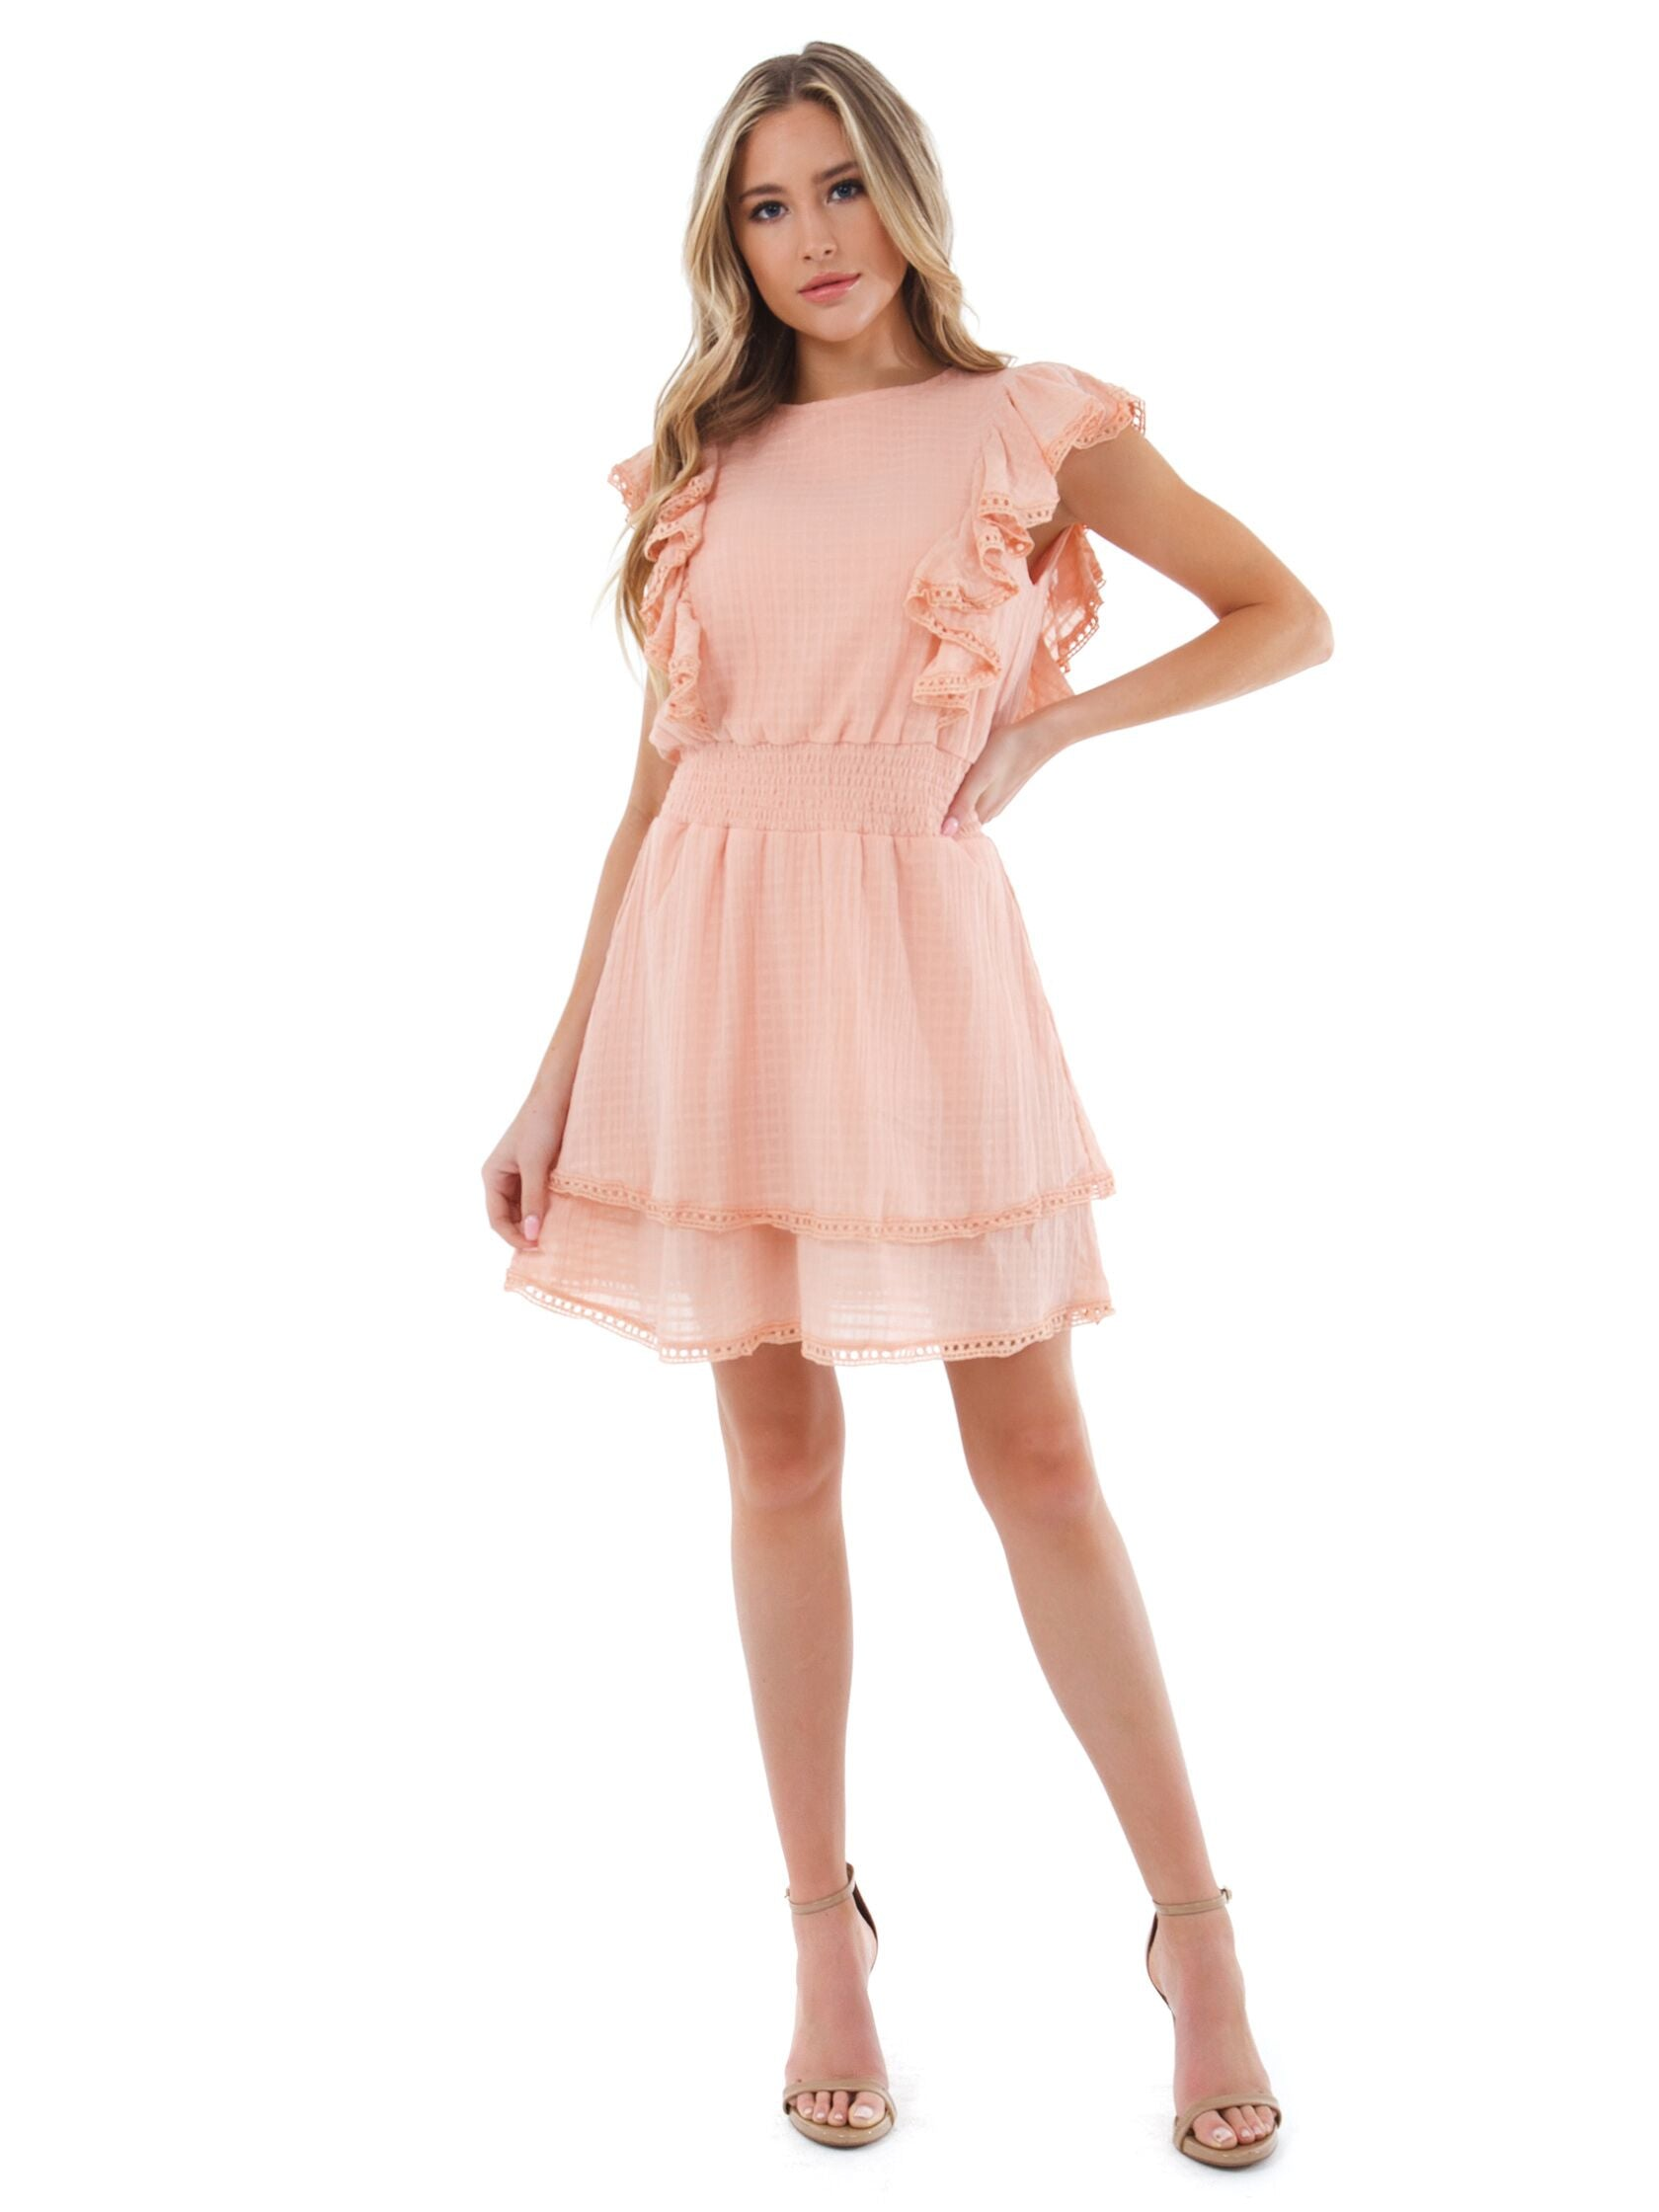 Girl outfit in a dress rental from SAGE THE LABEL called Summers Eve Ruffle Dress